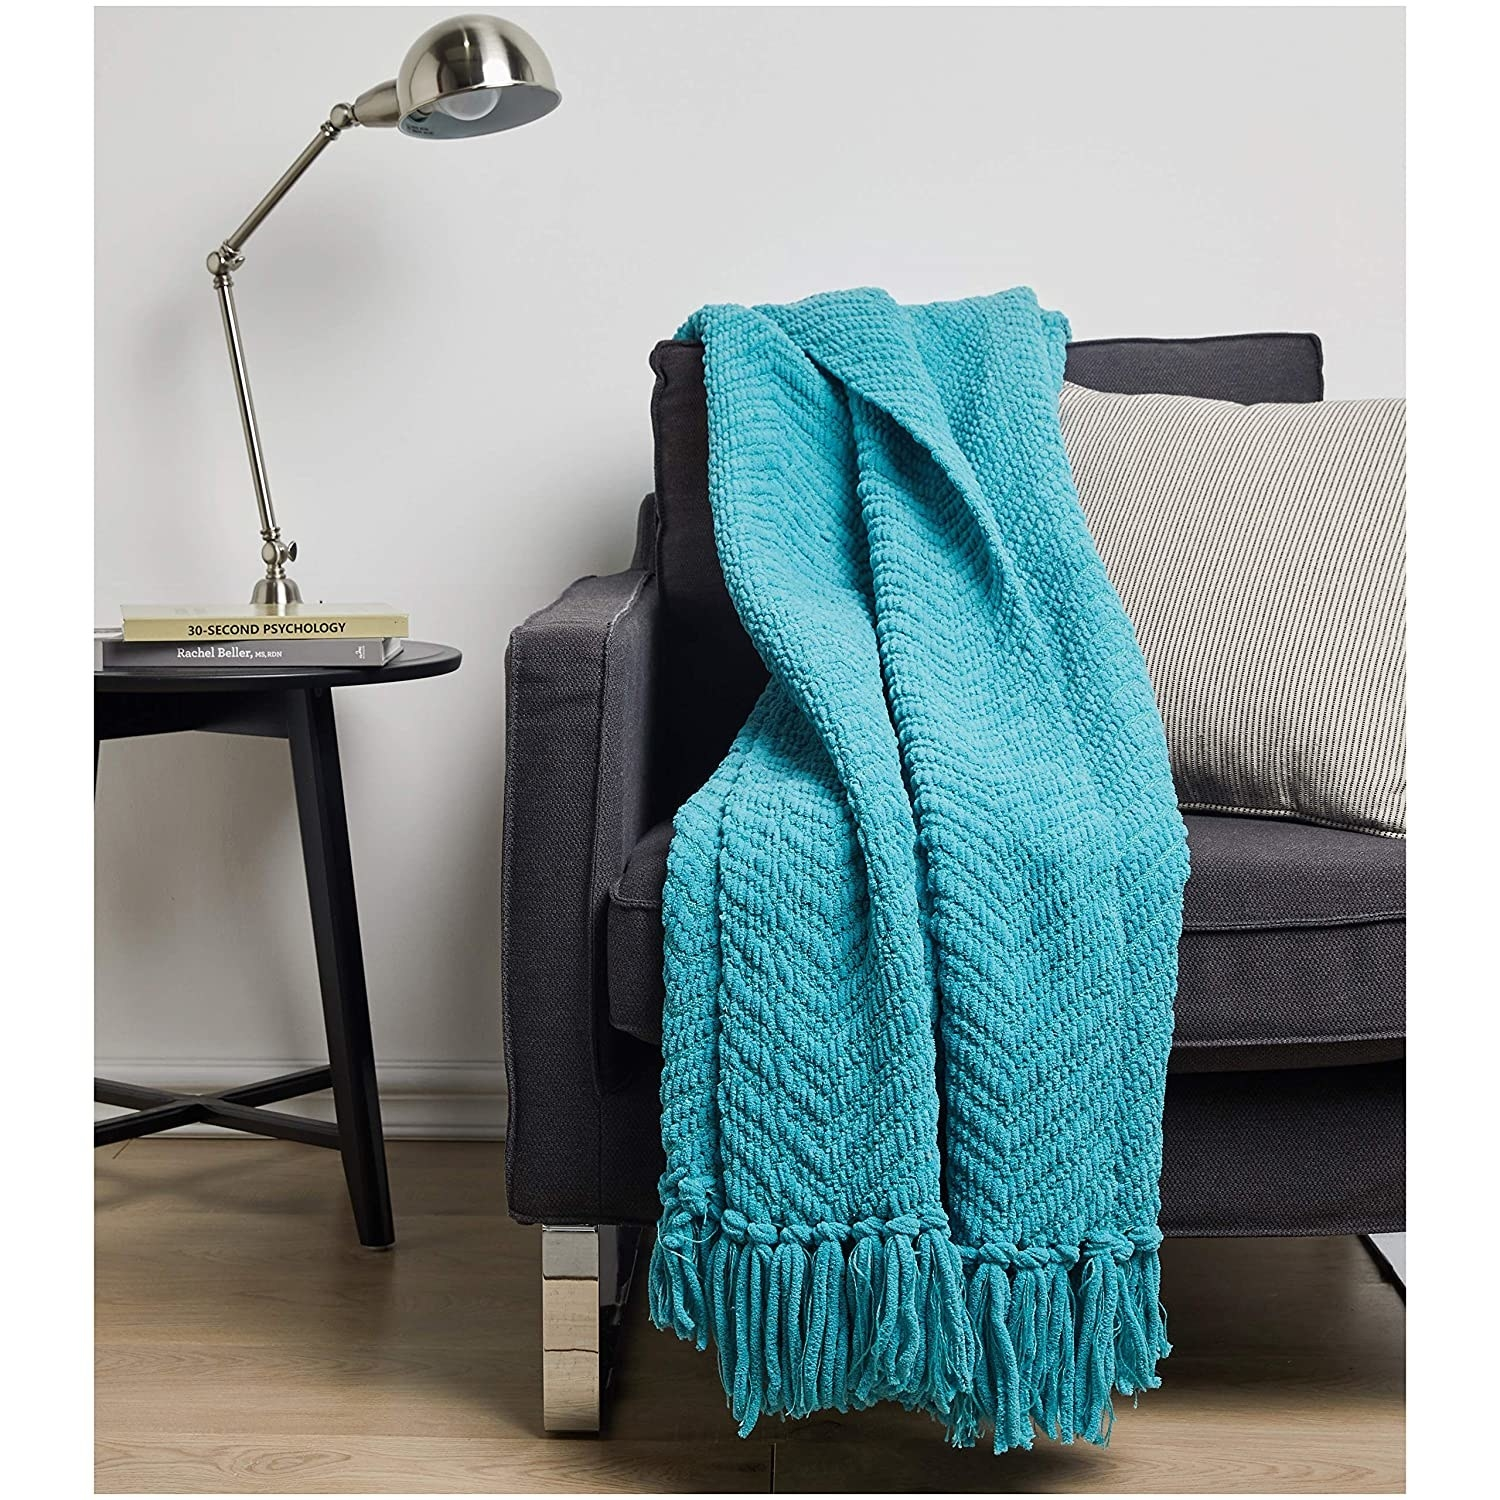 A chunky teal throw draped over a black couch.